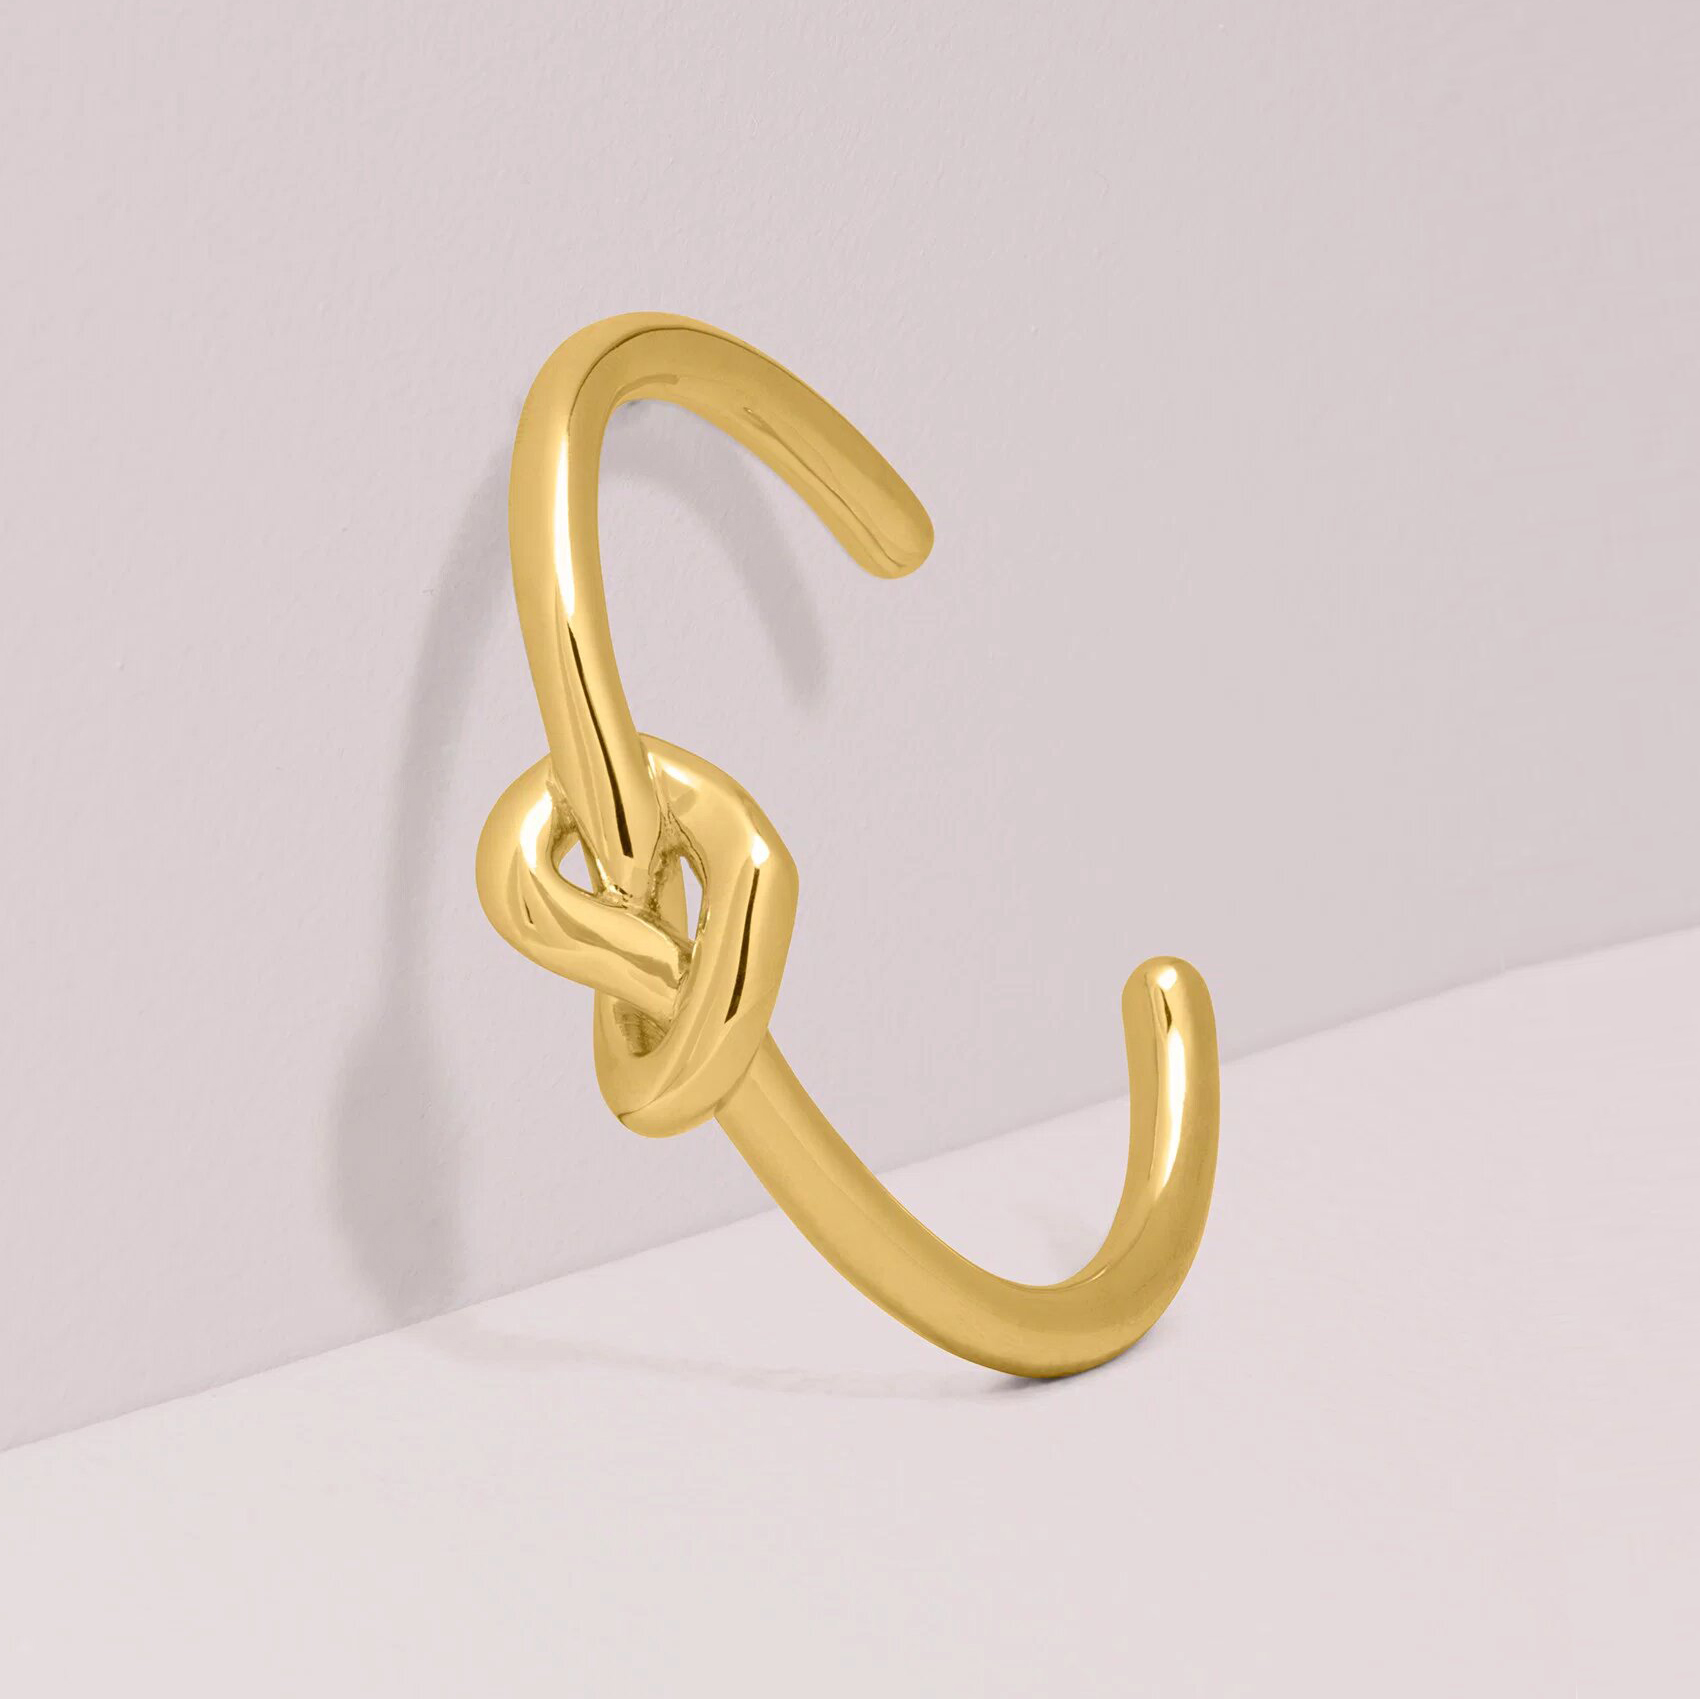 Kate Spade loves me knot cuff